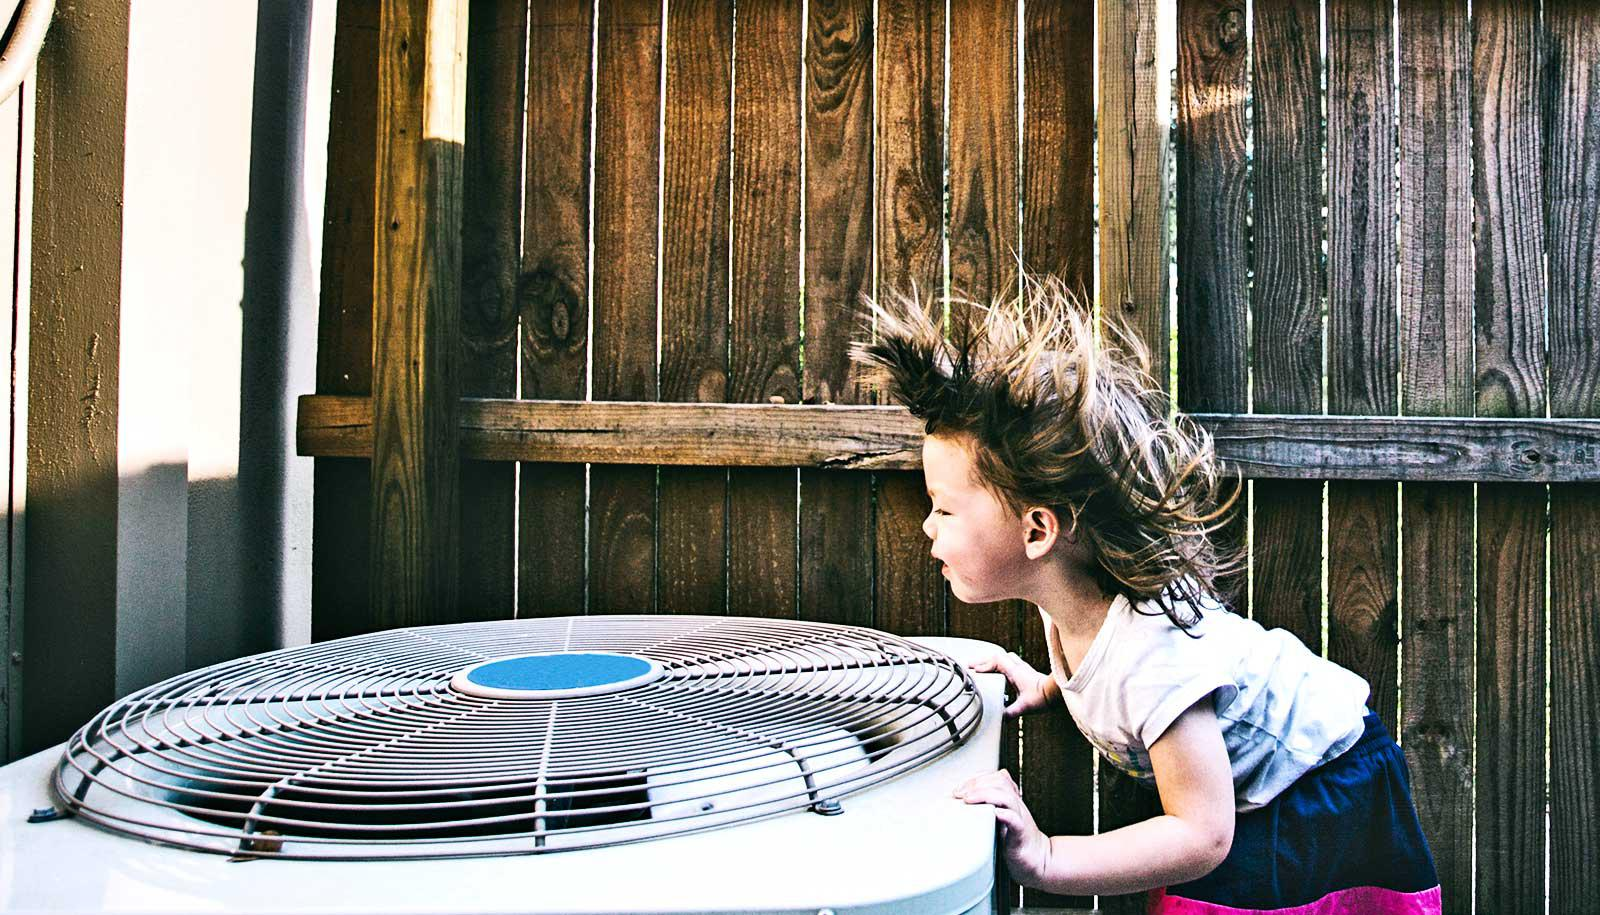 A young girl leans over an air conditioner unit as the air blows her hair up. Behind her and the AC unit, there's wooden fence